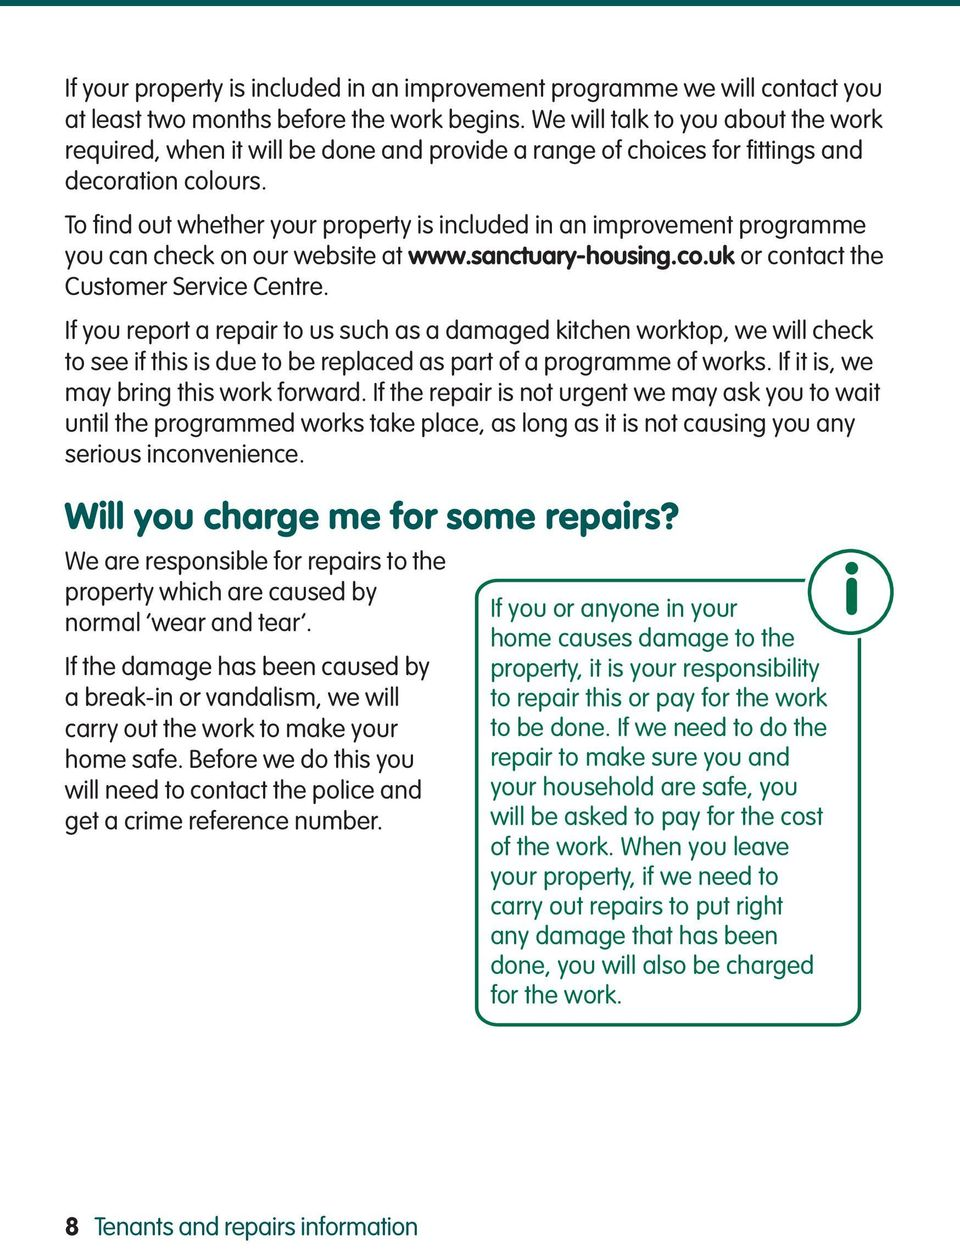 To find out whether your property is included in an improvement programme you can check on our website at www.sanctuary-housing.co.uk or contact the Customer Service Centre.